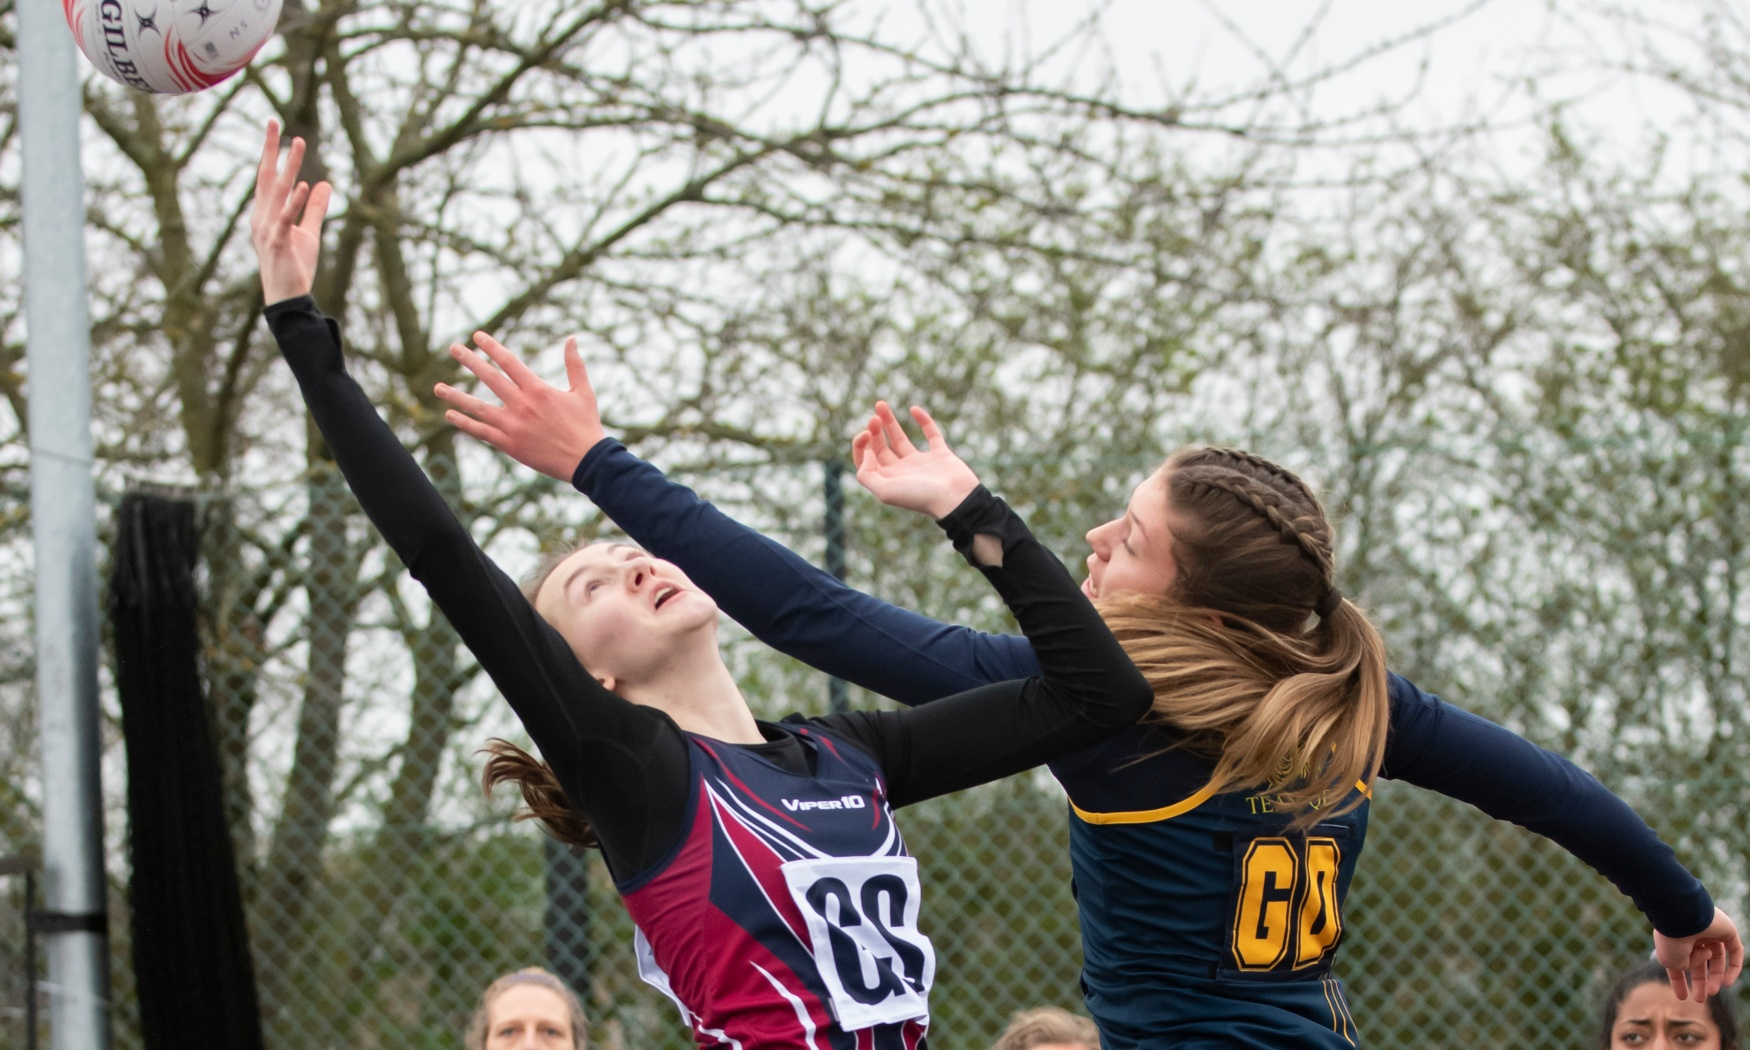 Netball Nationsal_March2019_011.jpg